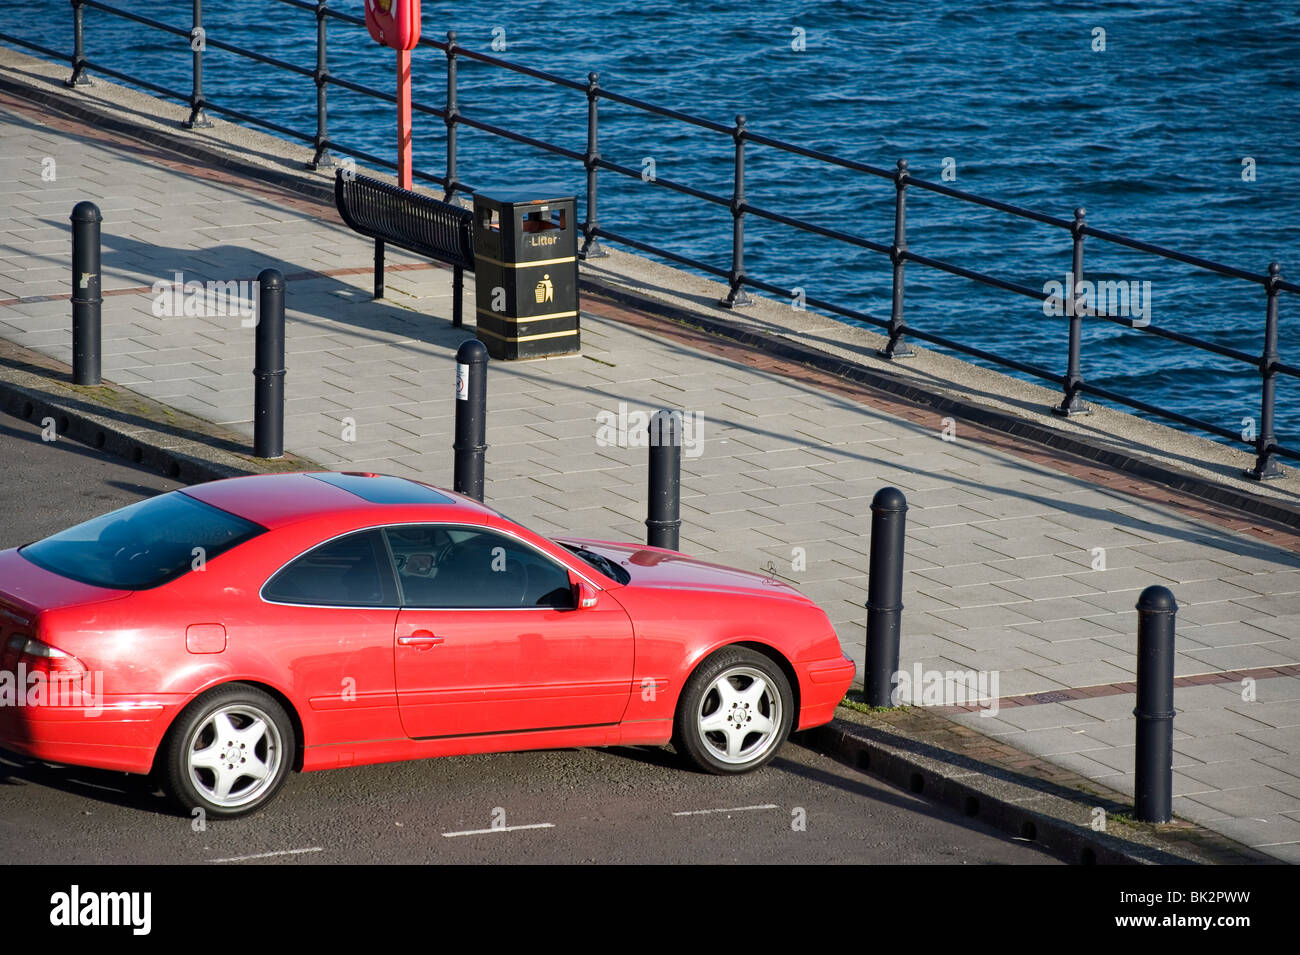 red car parked waterfront Barry UK - Stock Image